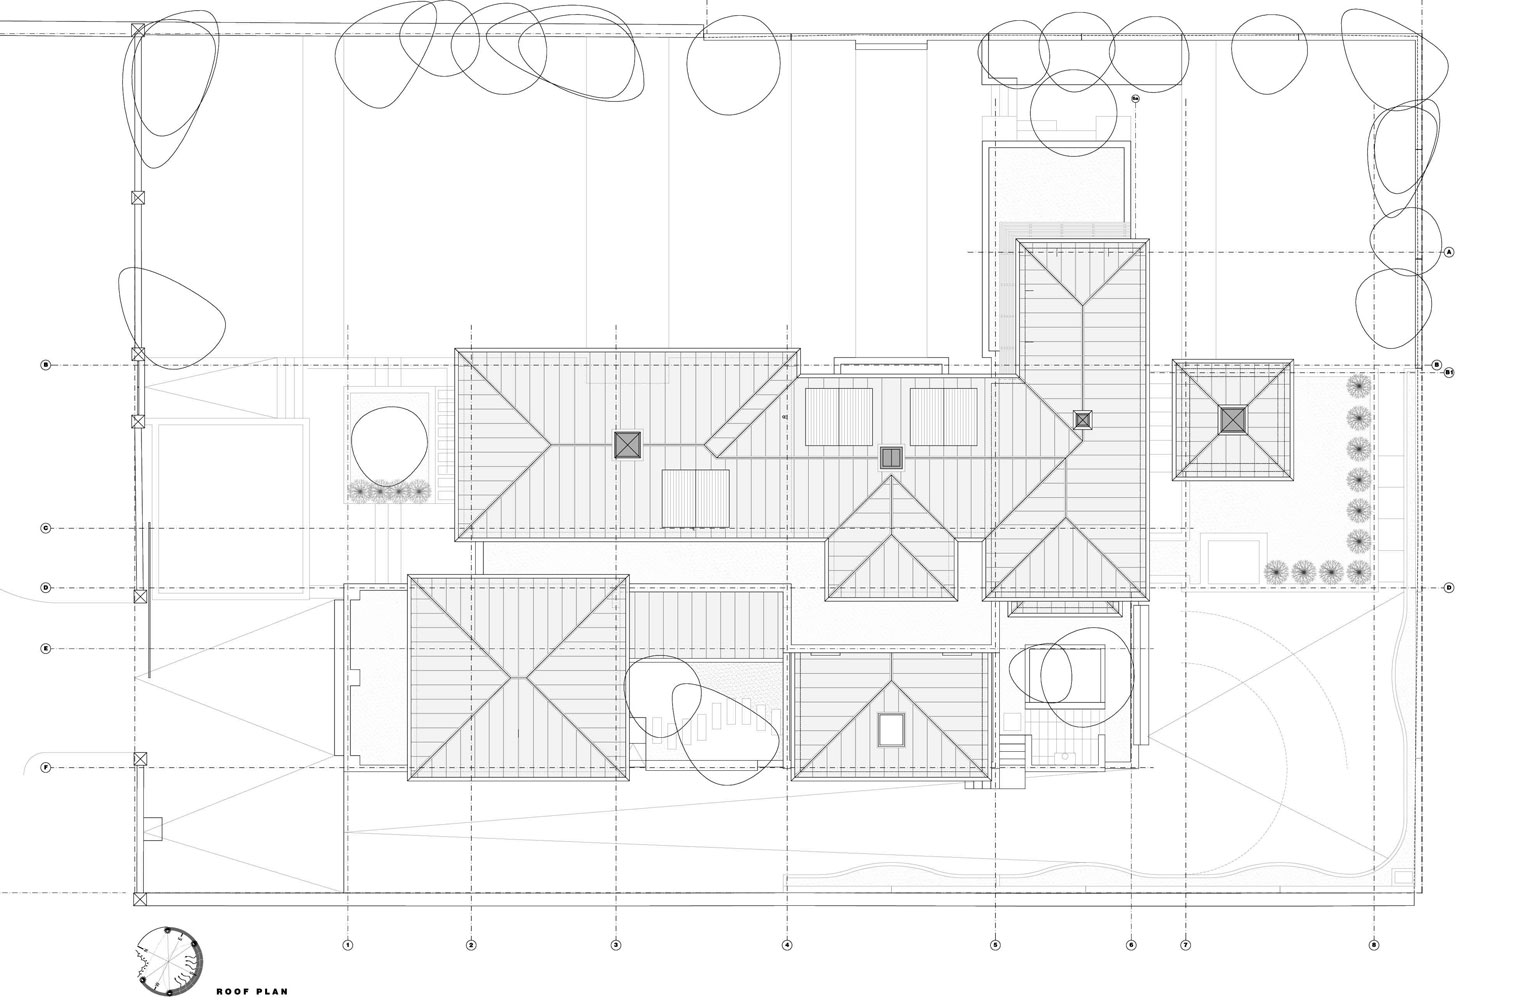 House Scheibe - Roof Plan